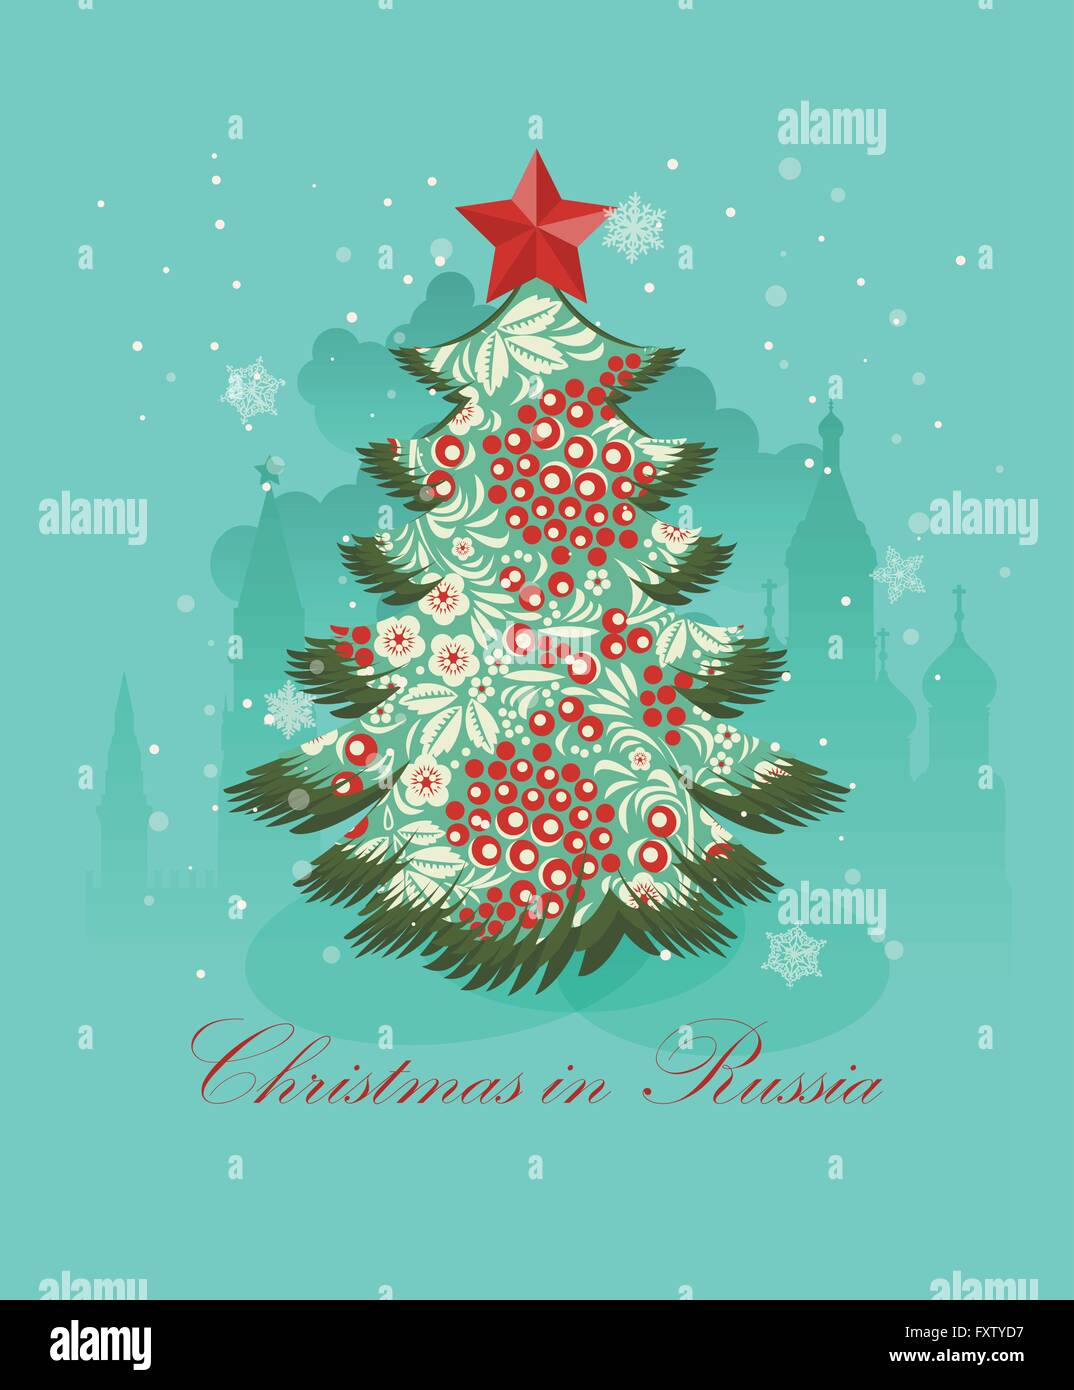 Christmas Greeting Card With Russian Christmas Tree Stock Vector Art